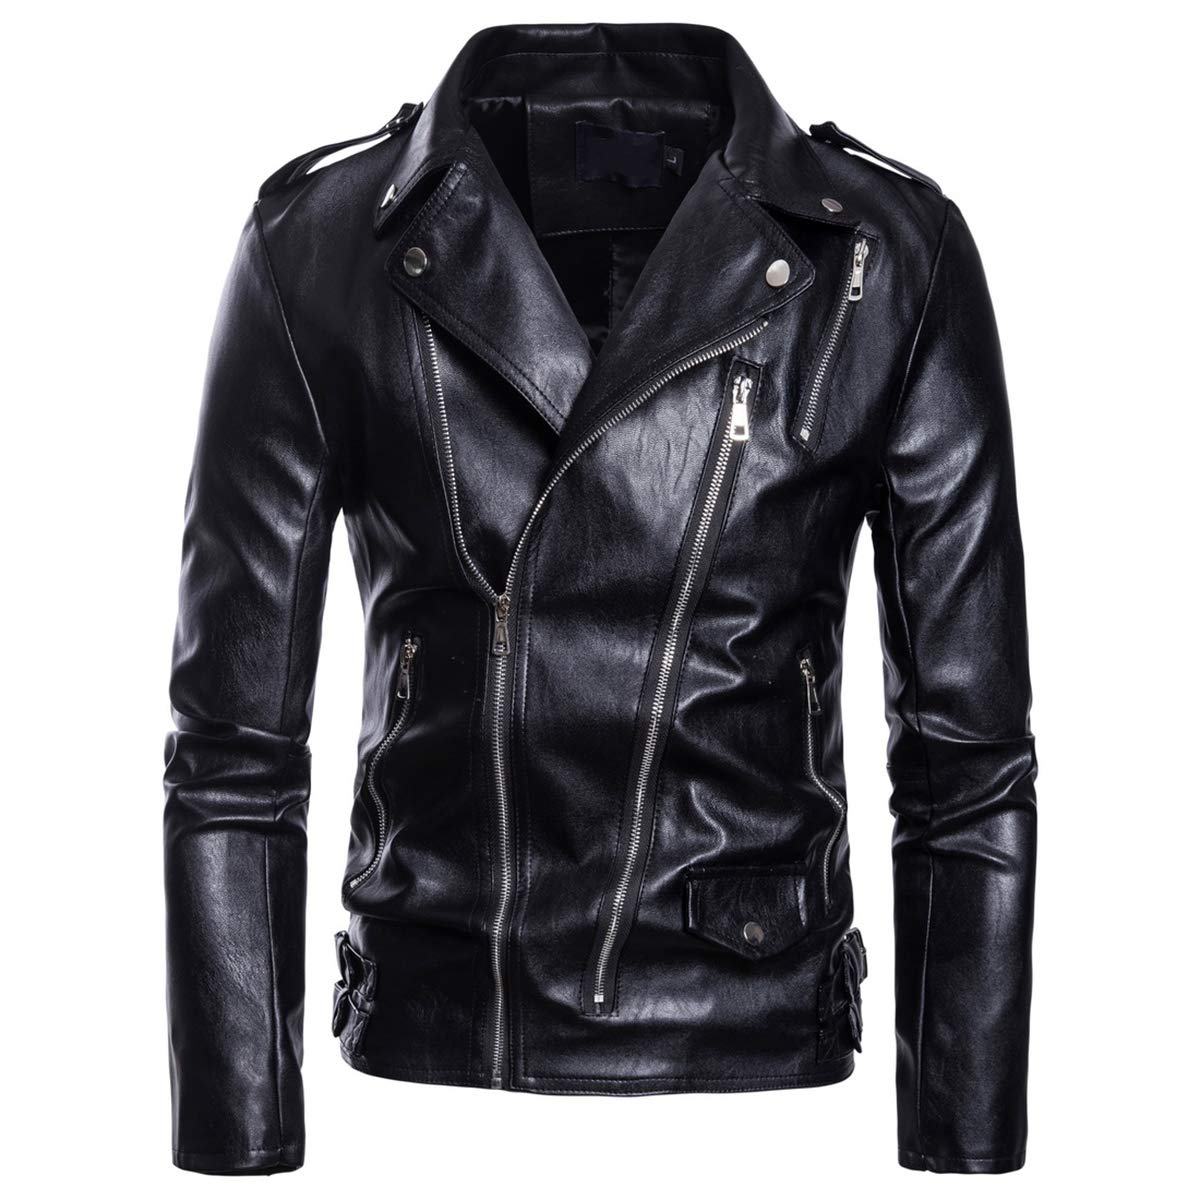 AOWOFS Men's Faux Leather Jacket Motorcycle Lapel Bomber Punk Irregular Zipper Jacket Black Slim by AOWOFS